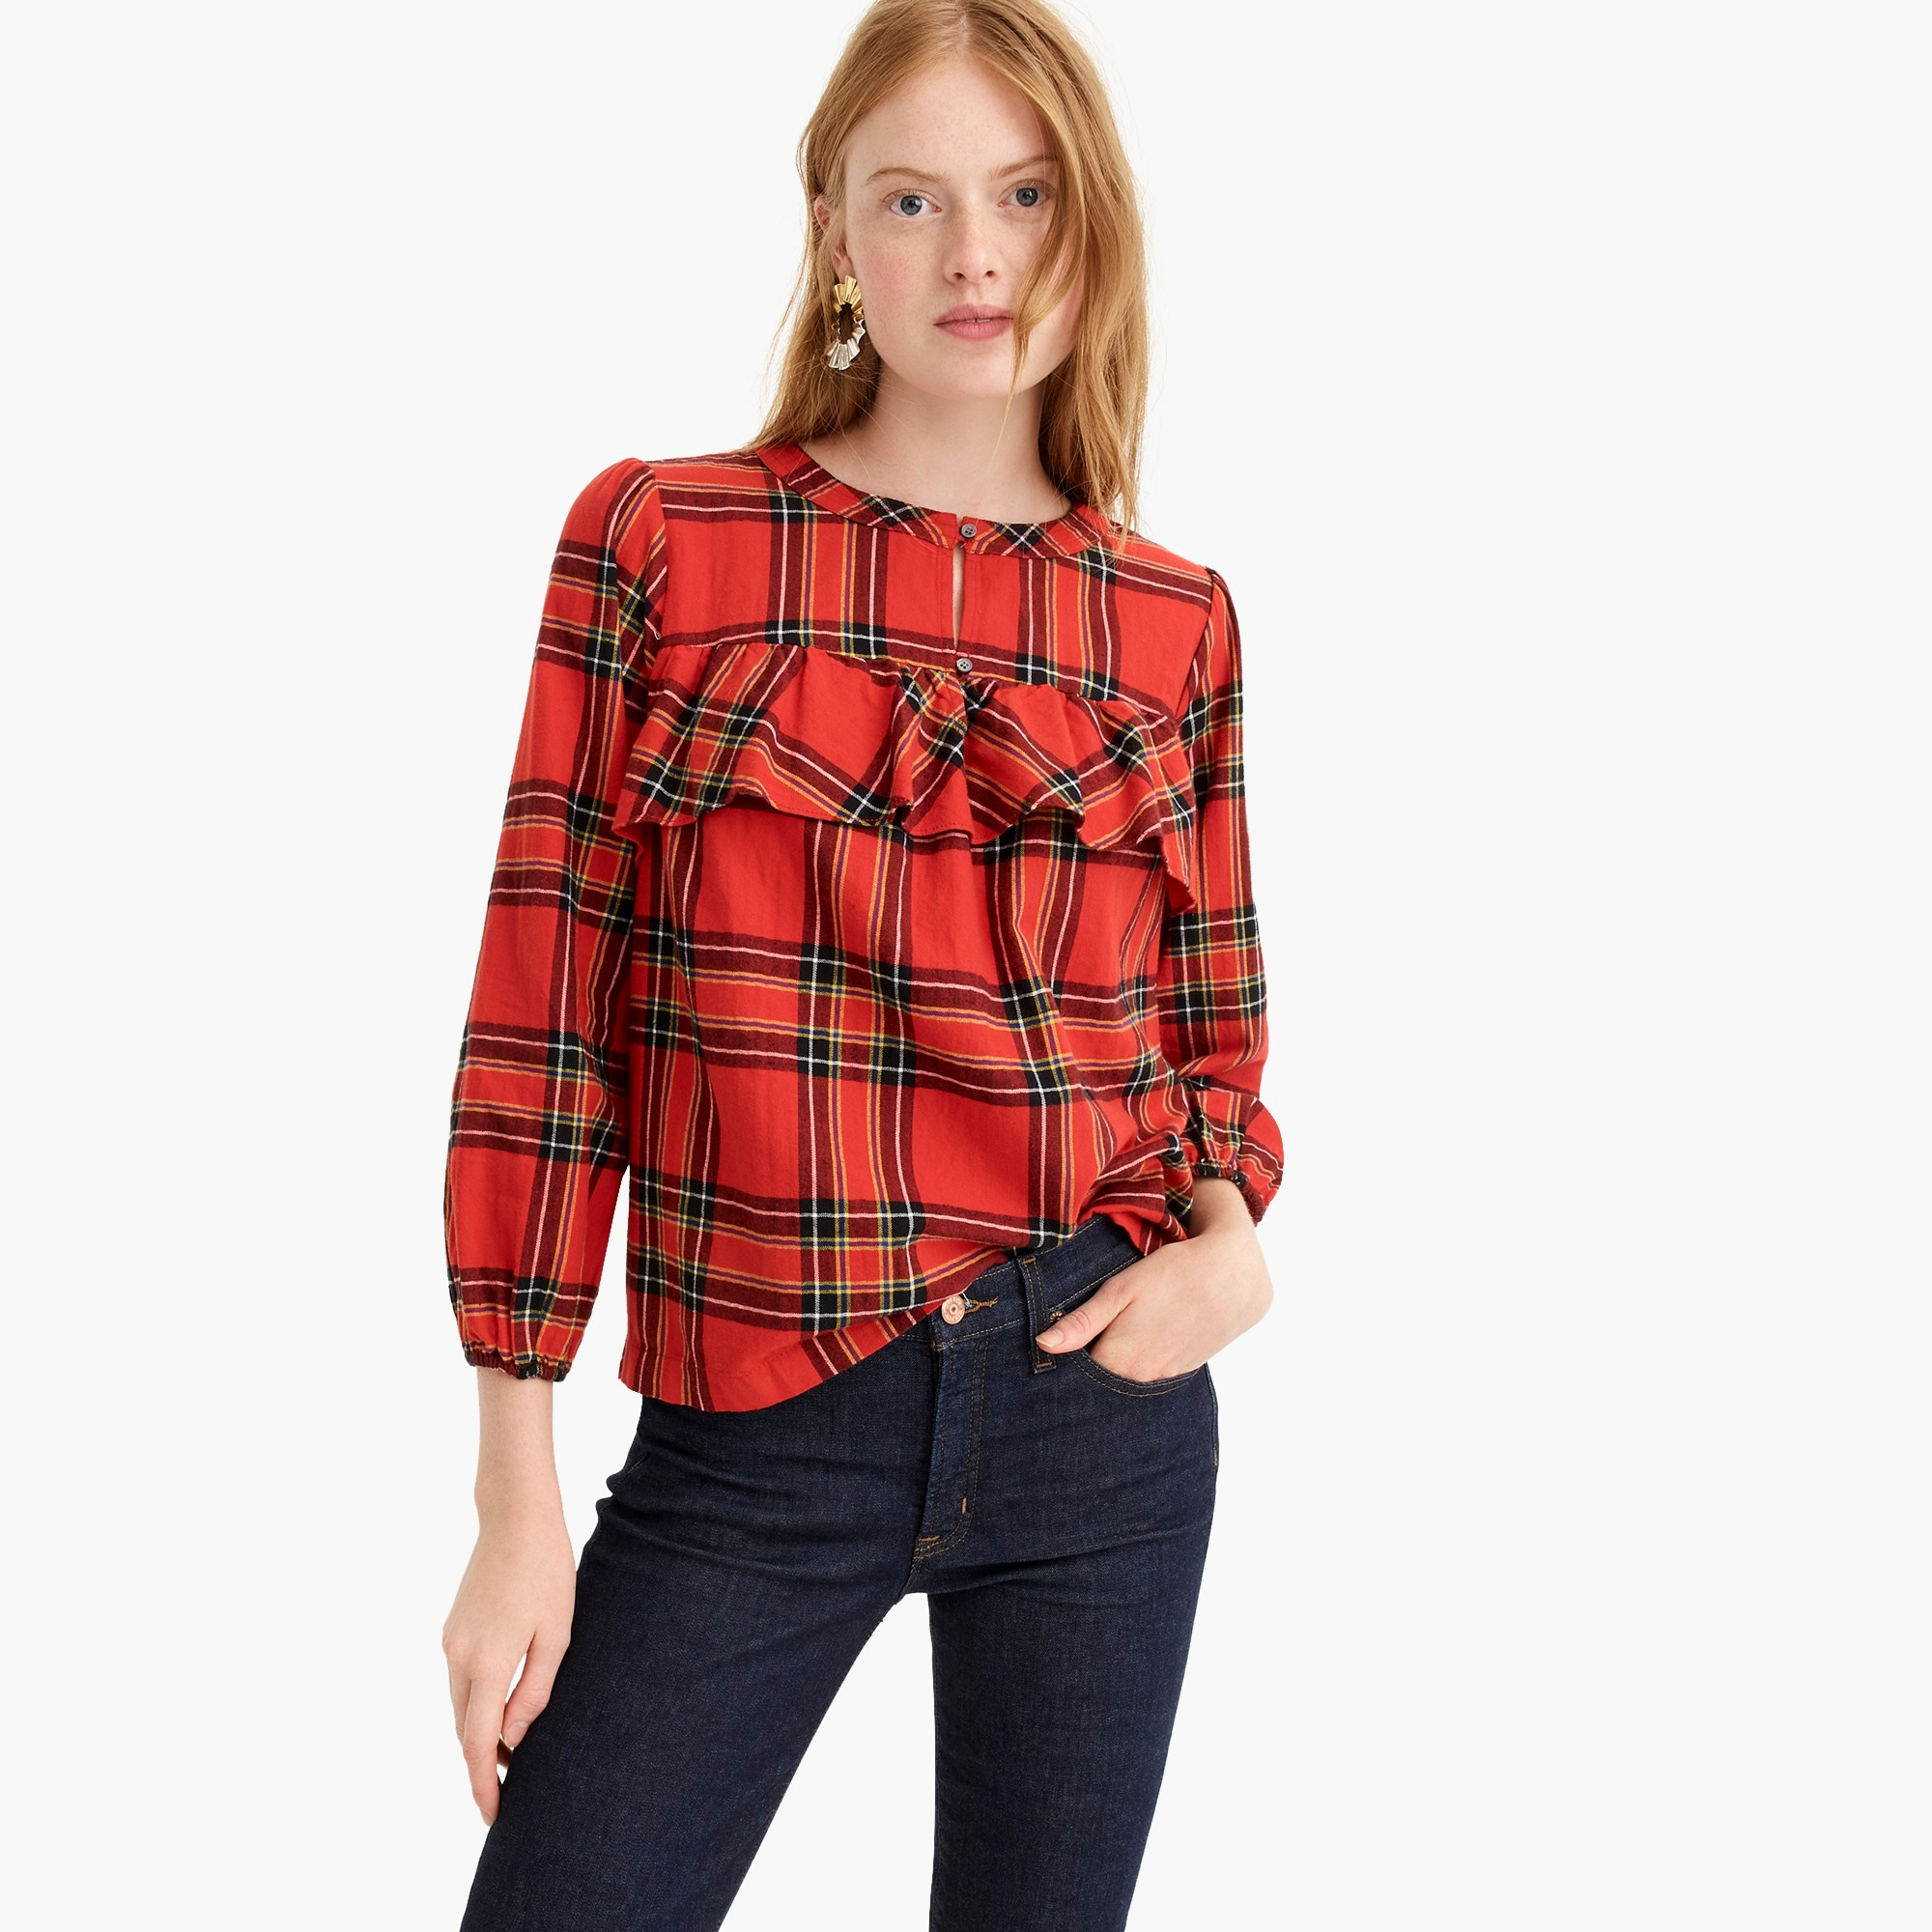 Image 1 for Ruffle top in festive plaid